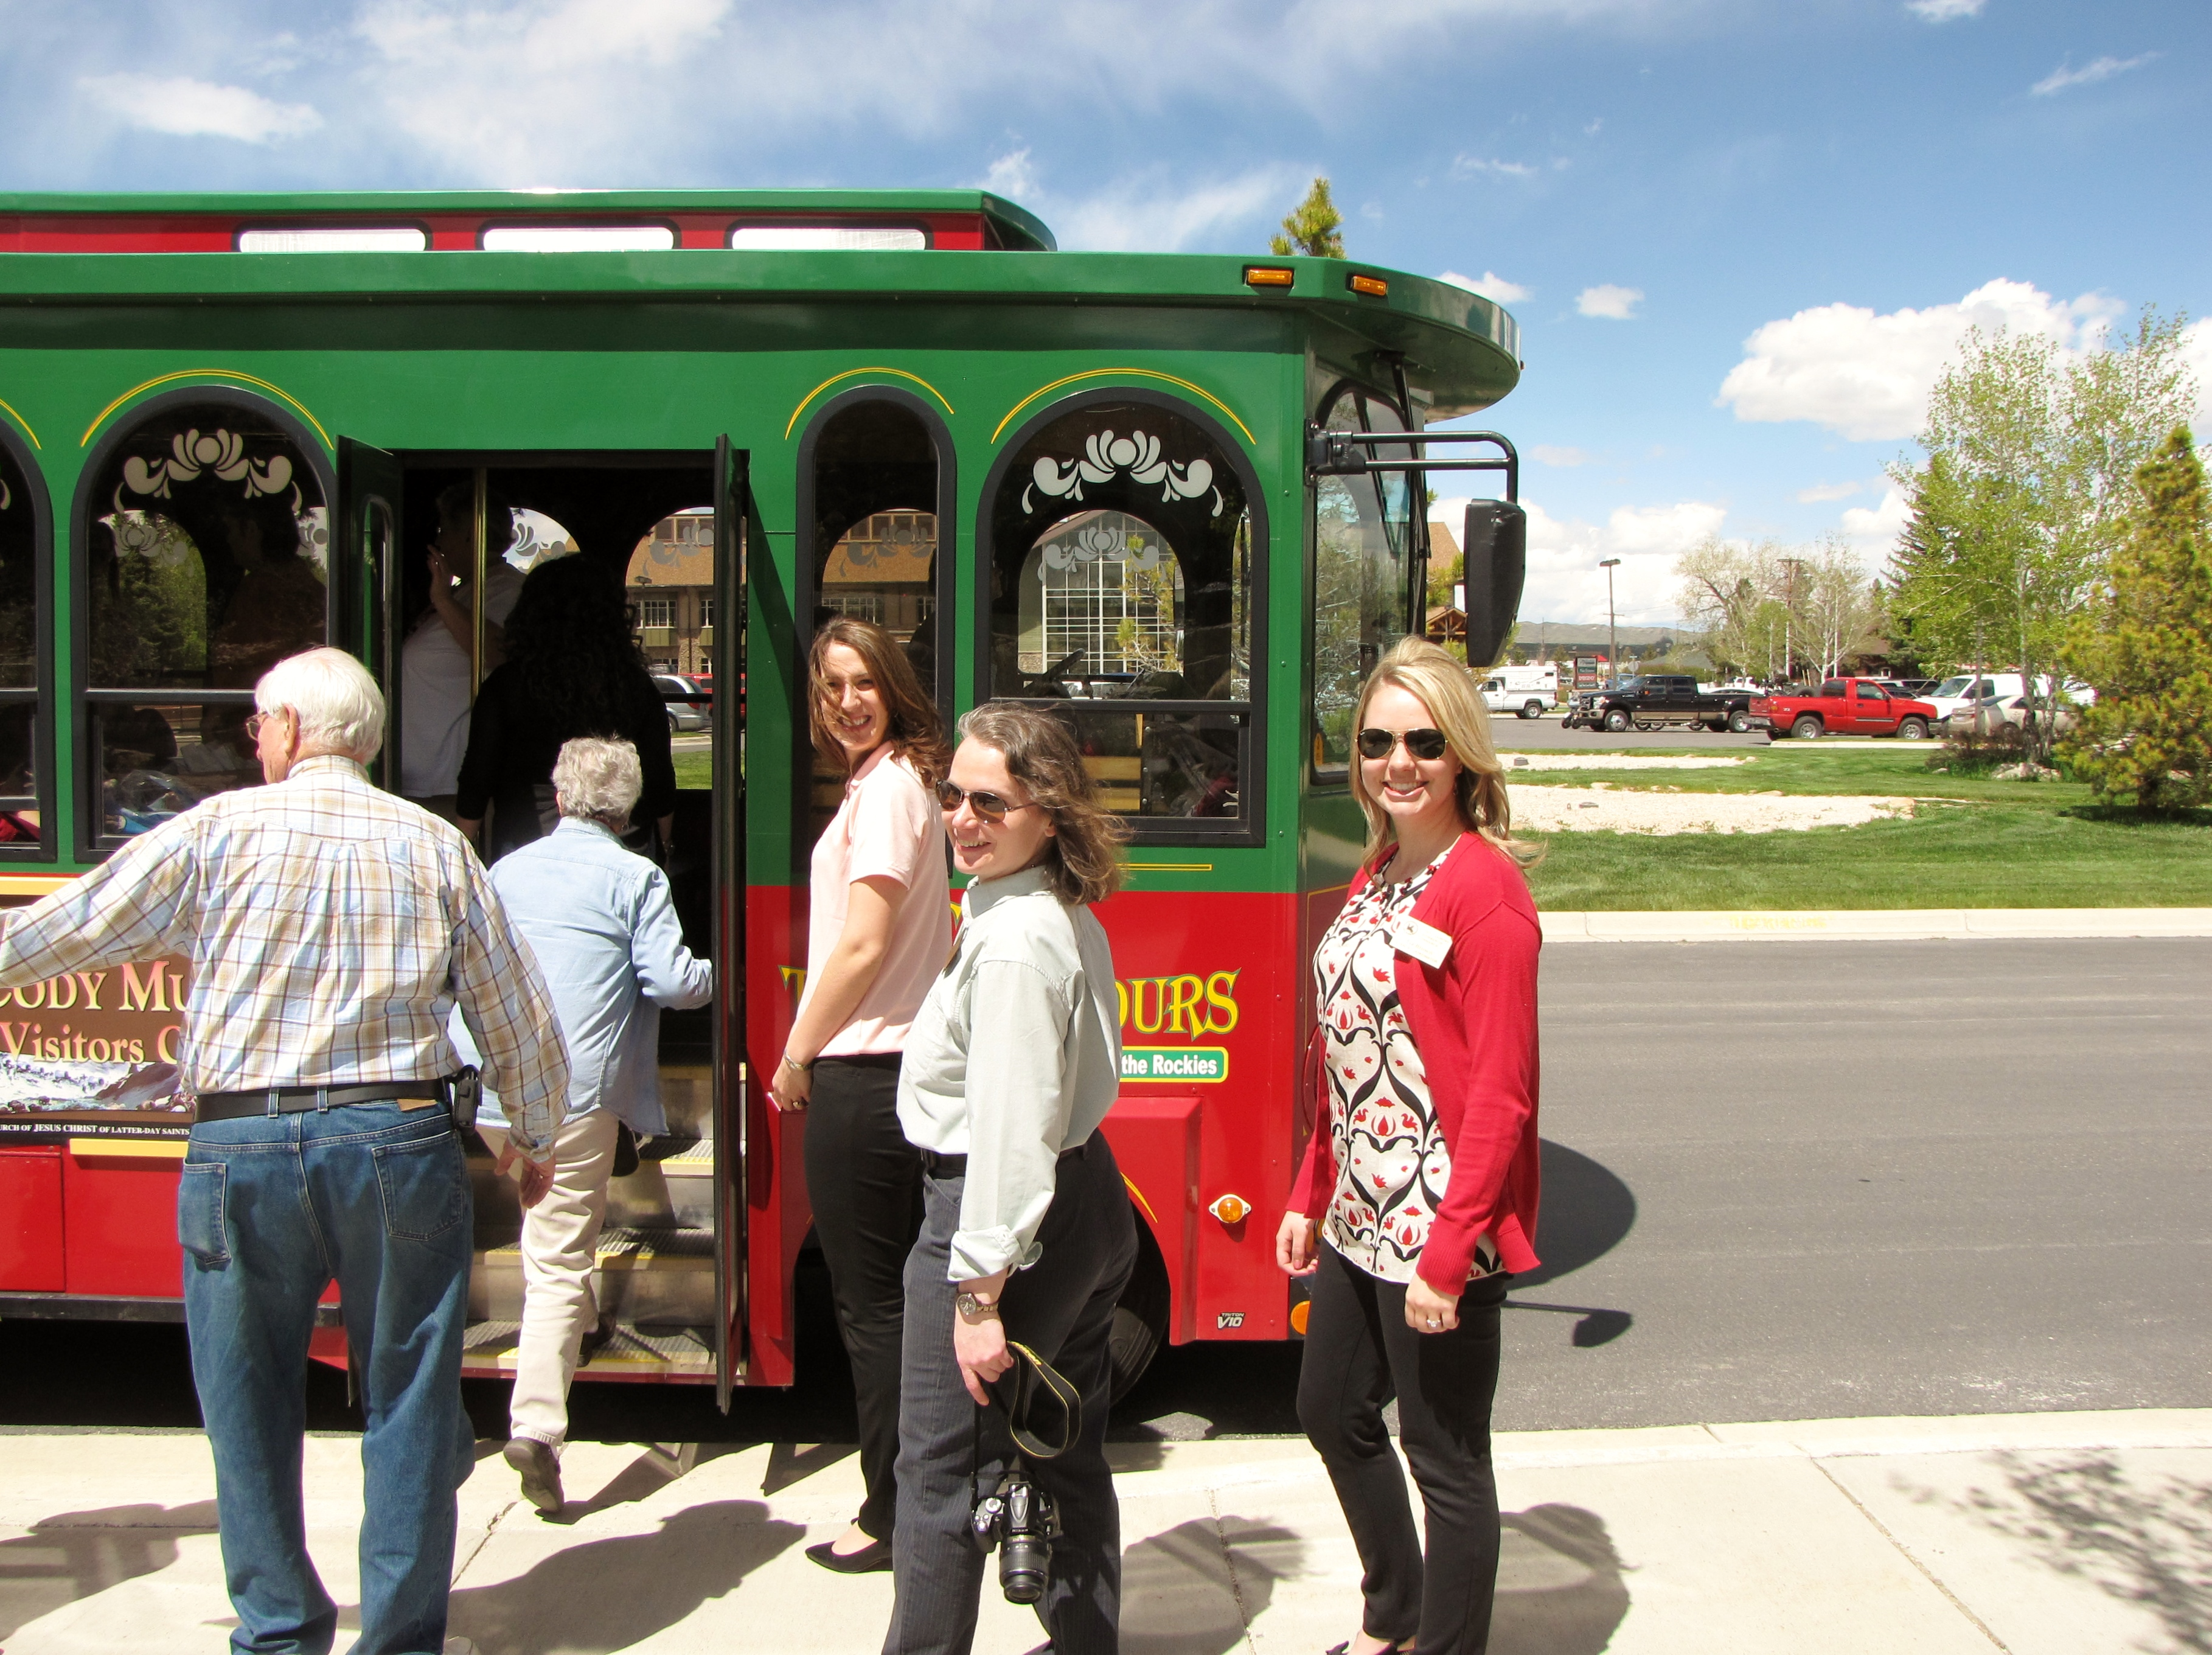 Cody in Wyoming —Passengers board a red and green trolley